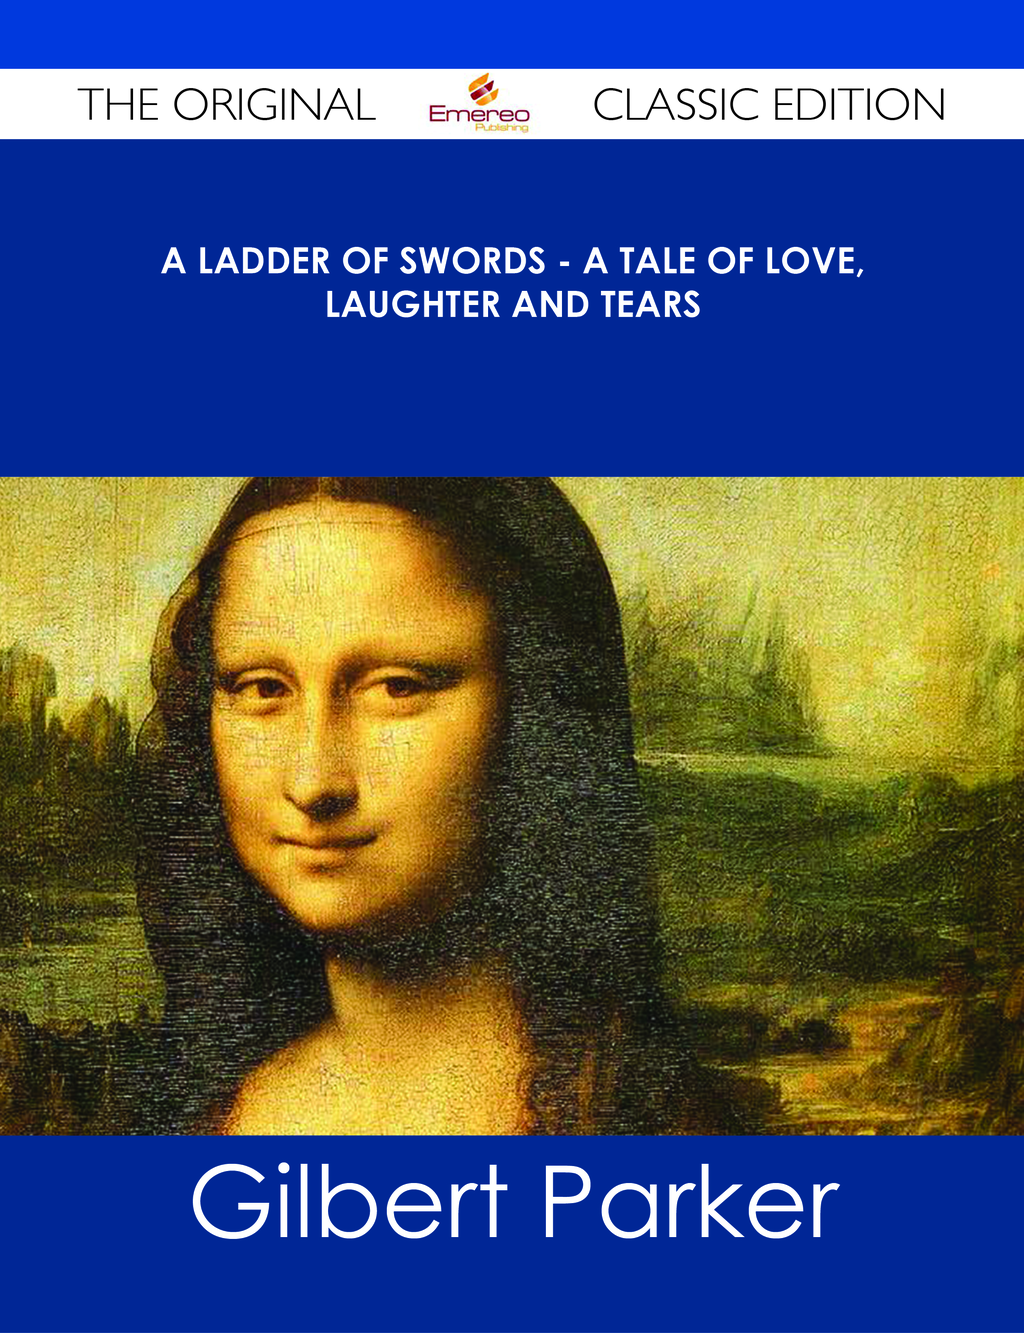 A Ladder of Swords - A Tale of Love, Laughter and Tears - The Original Classic Edition